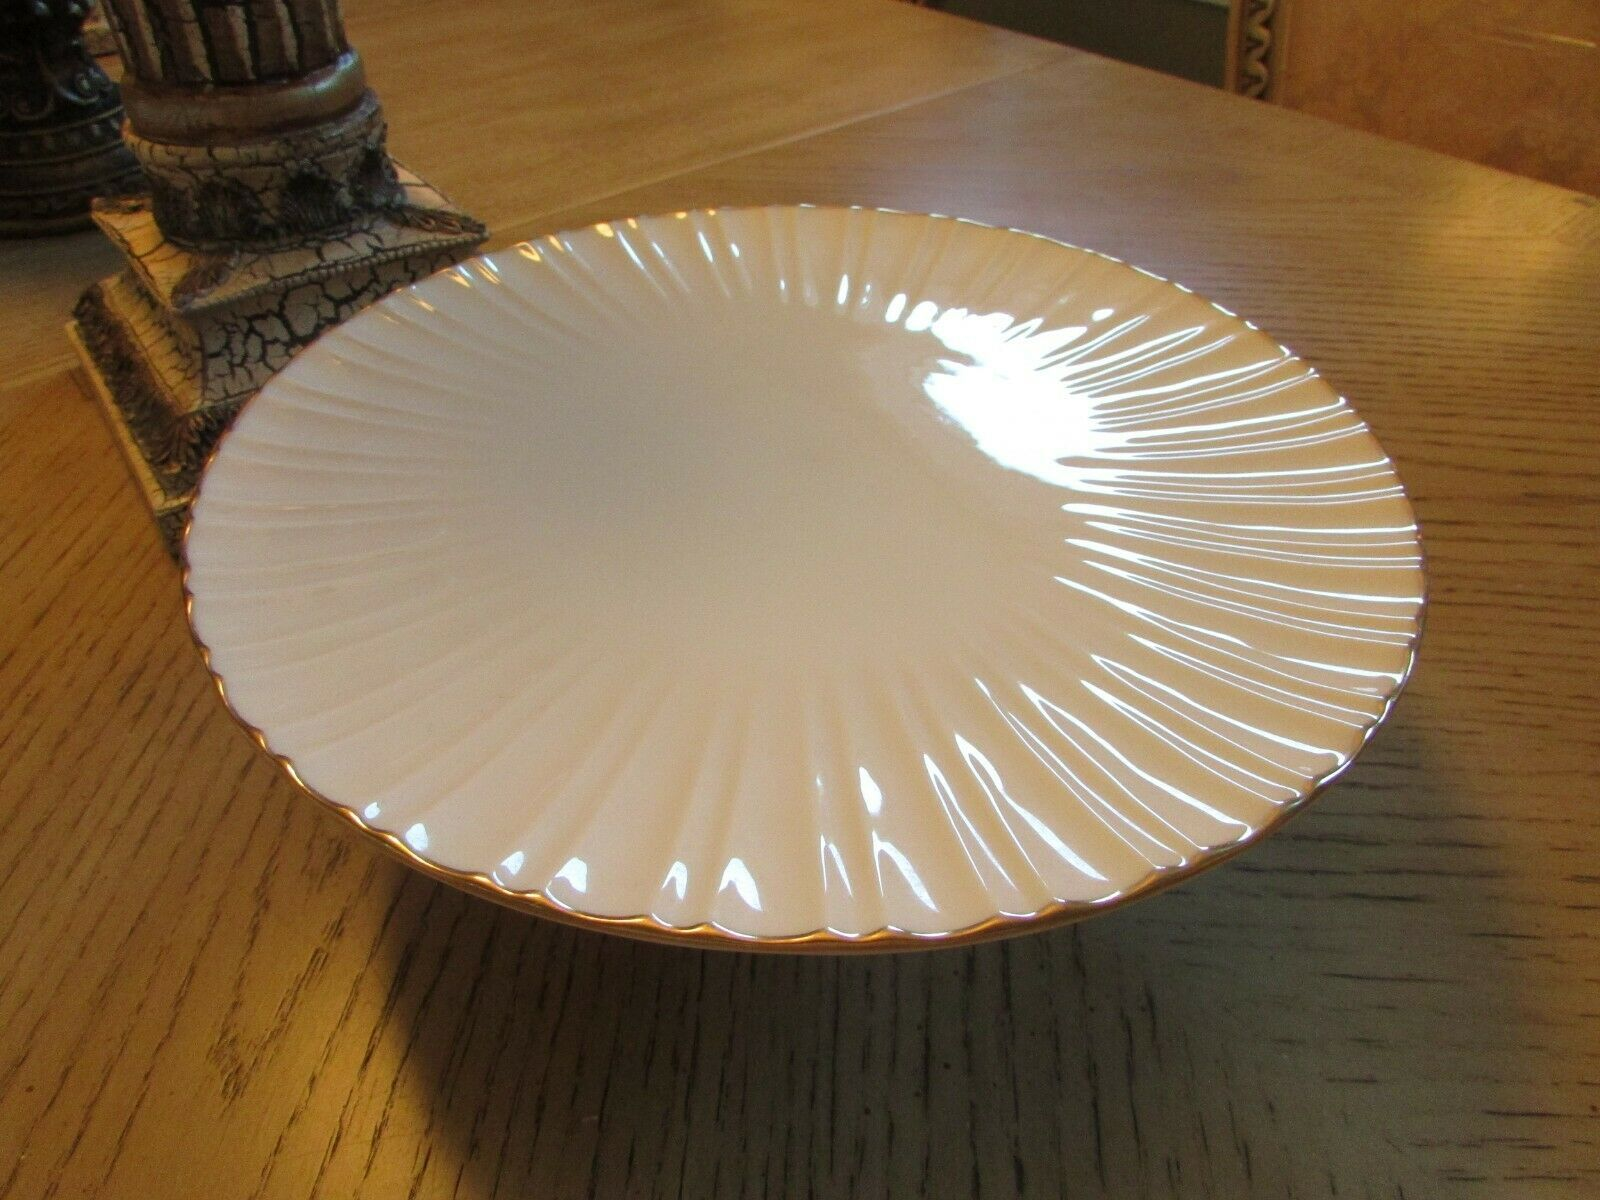 """LENOX CHINA FOOTED CAKE PLATE PLAZA COLLECTION 10.75"""" MADE IN USA  image 2"""